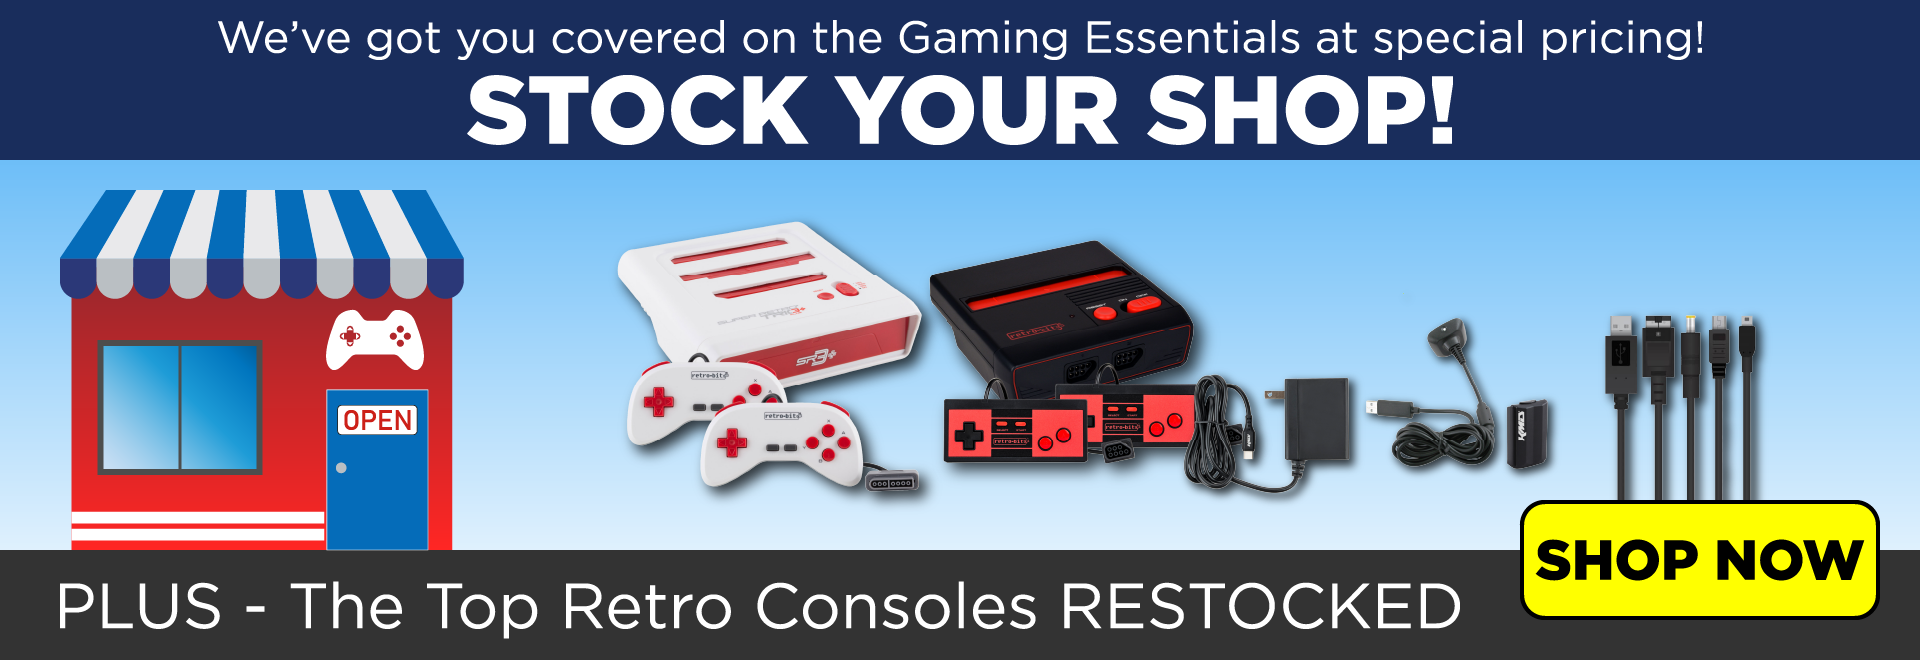 Gaming Essentials - We've got you covered with special pricing!